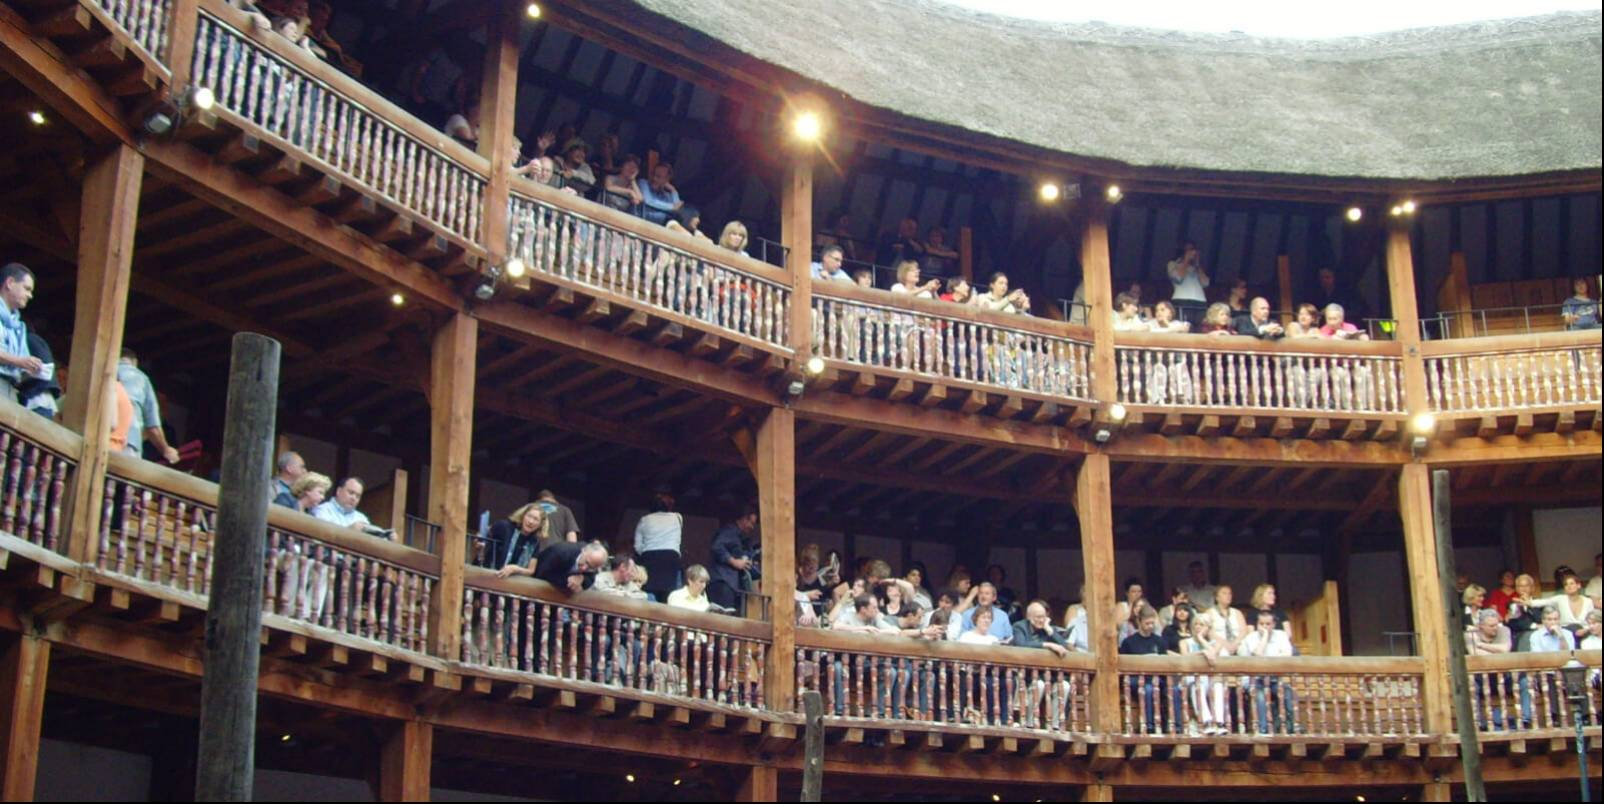 Le Shakespeare Globe Theatre de Londres